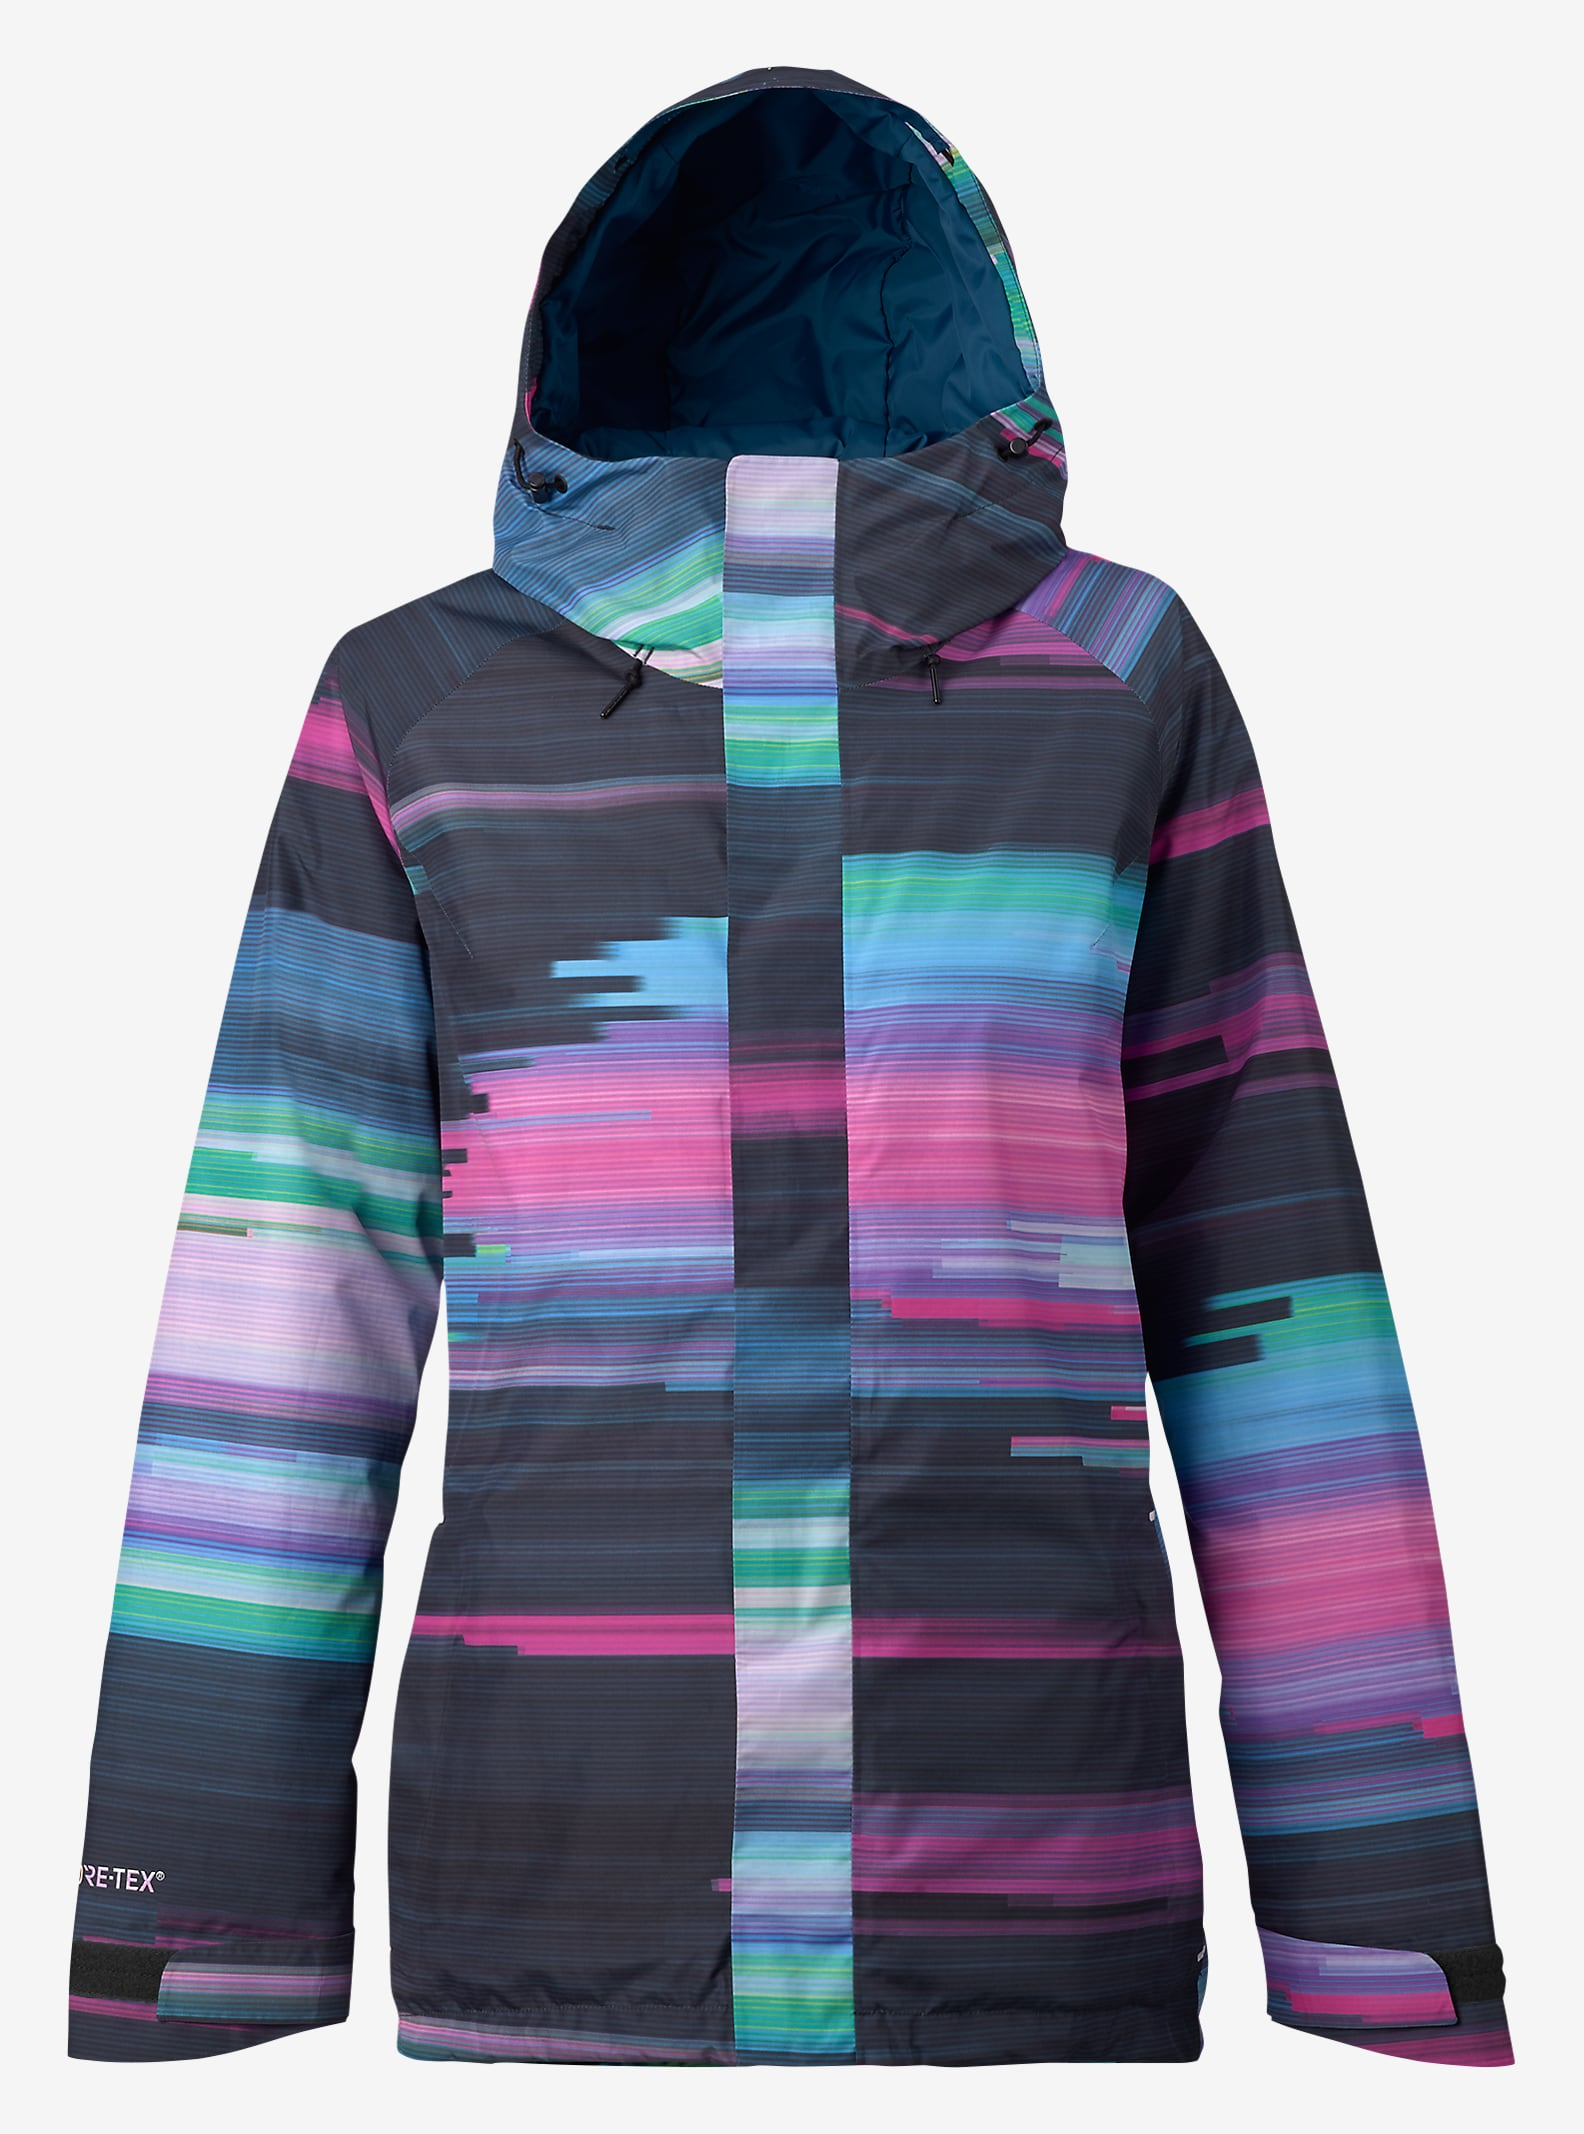 Burton Rubix GORE-TEX® Jacket shown in Jaded Flynn Glitch